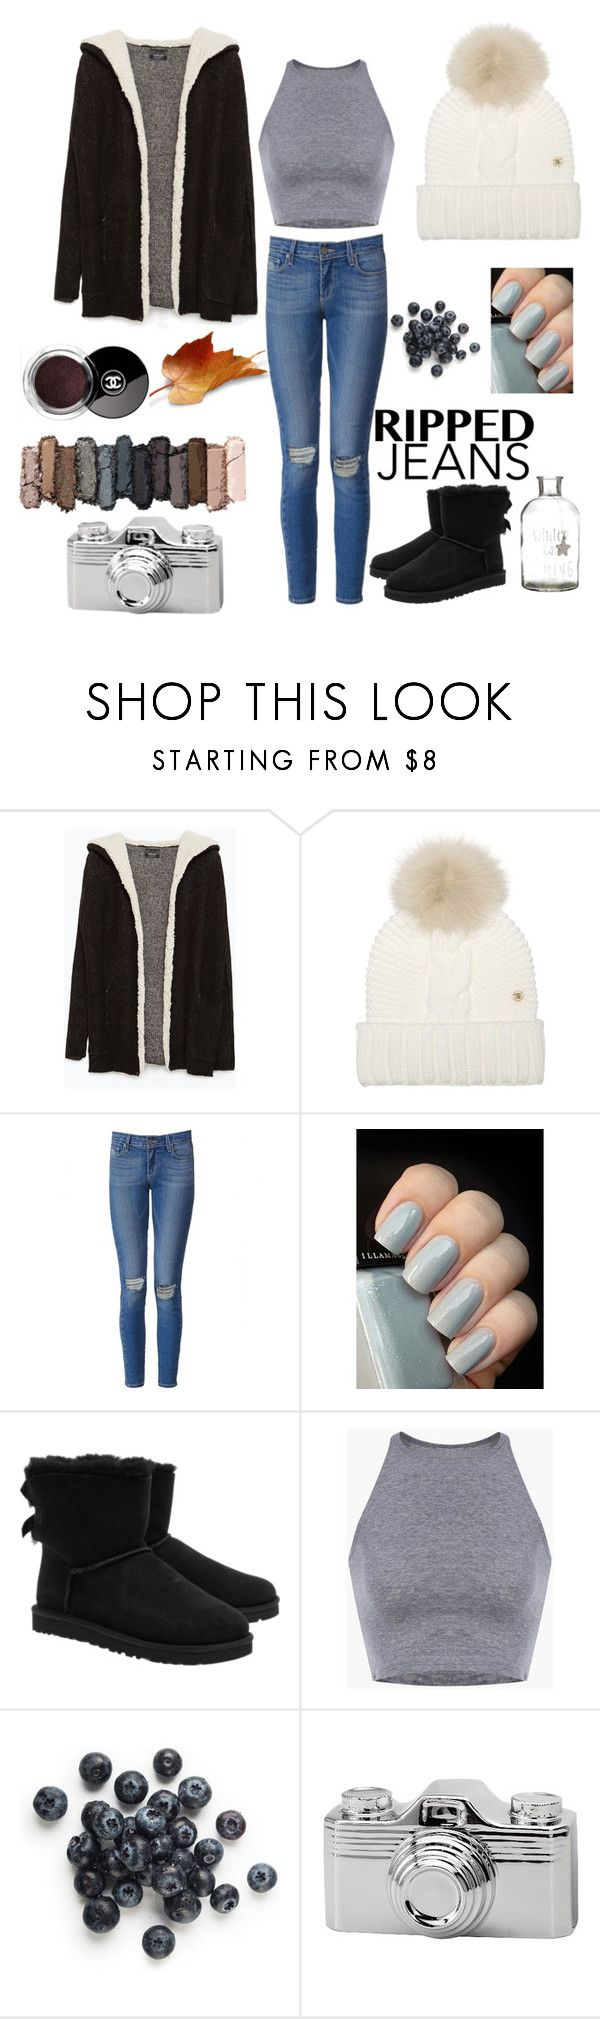 """Ripped Jeans "" by mayadella ❤ liked on Polyvore featuring Zara, Woolrich, Paige Denim, UGG Australia, Chanel, Torre & Tagus, Urban Decay, women's clothing, women and female"